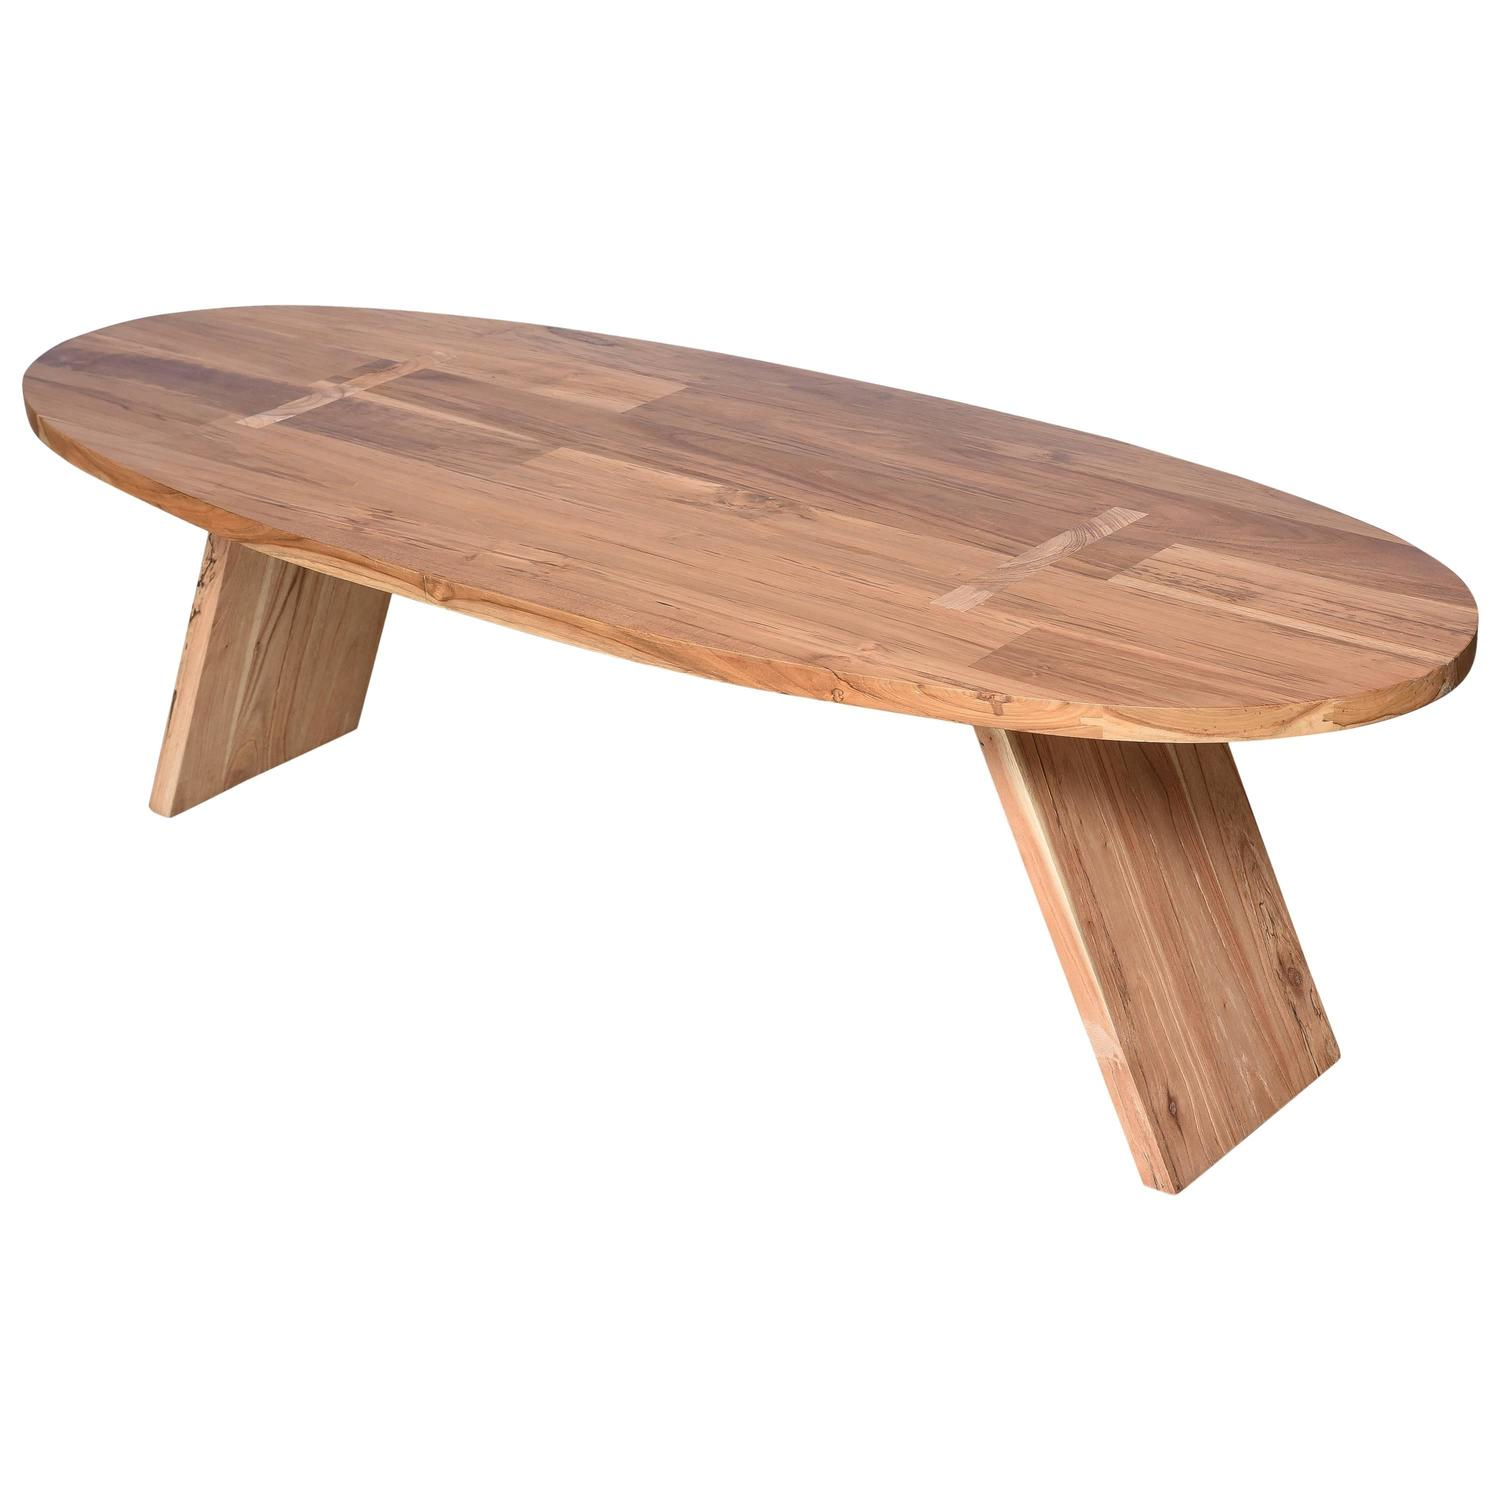 Coffee table teak wood oval surfboard shape handmade